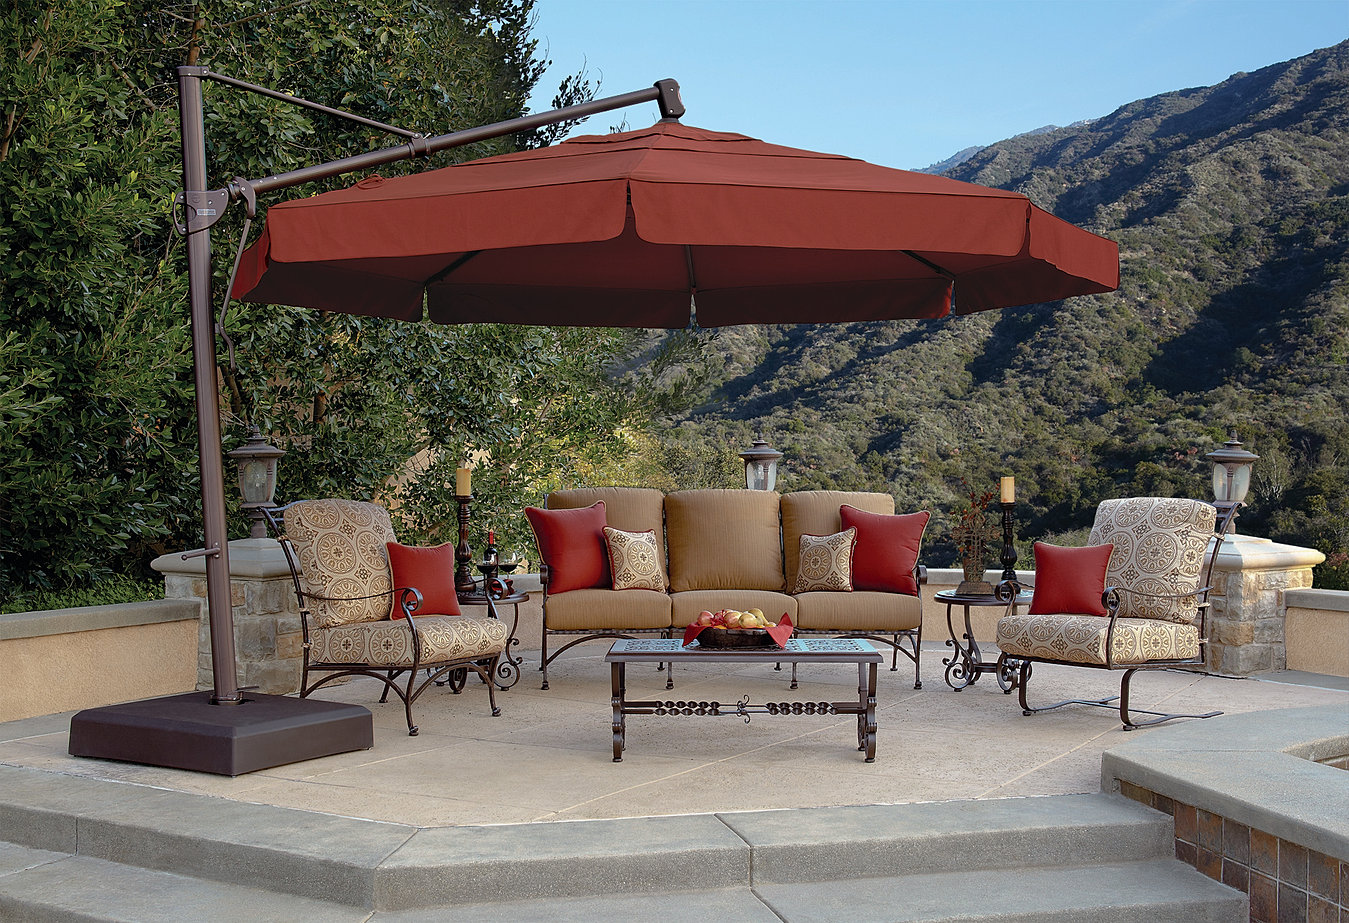 Jerry S Casual Patio What S In Your Backyard